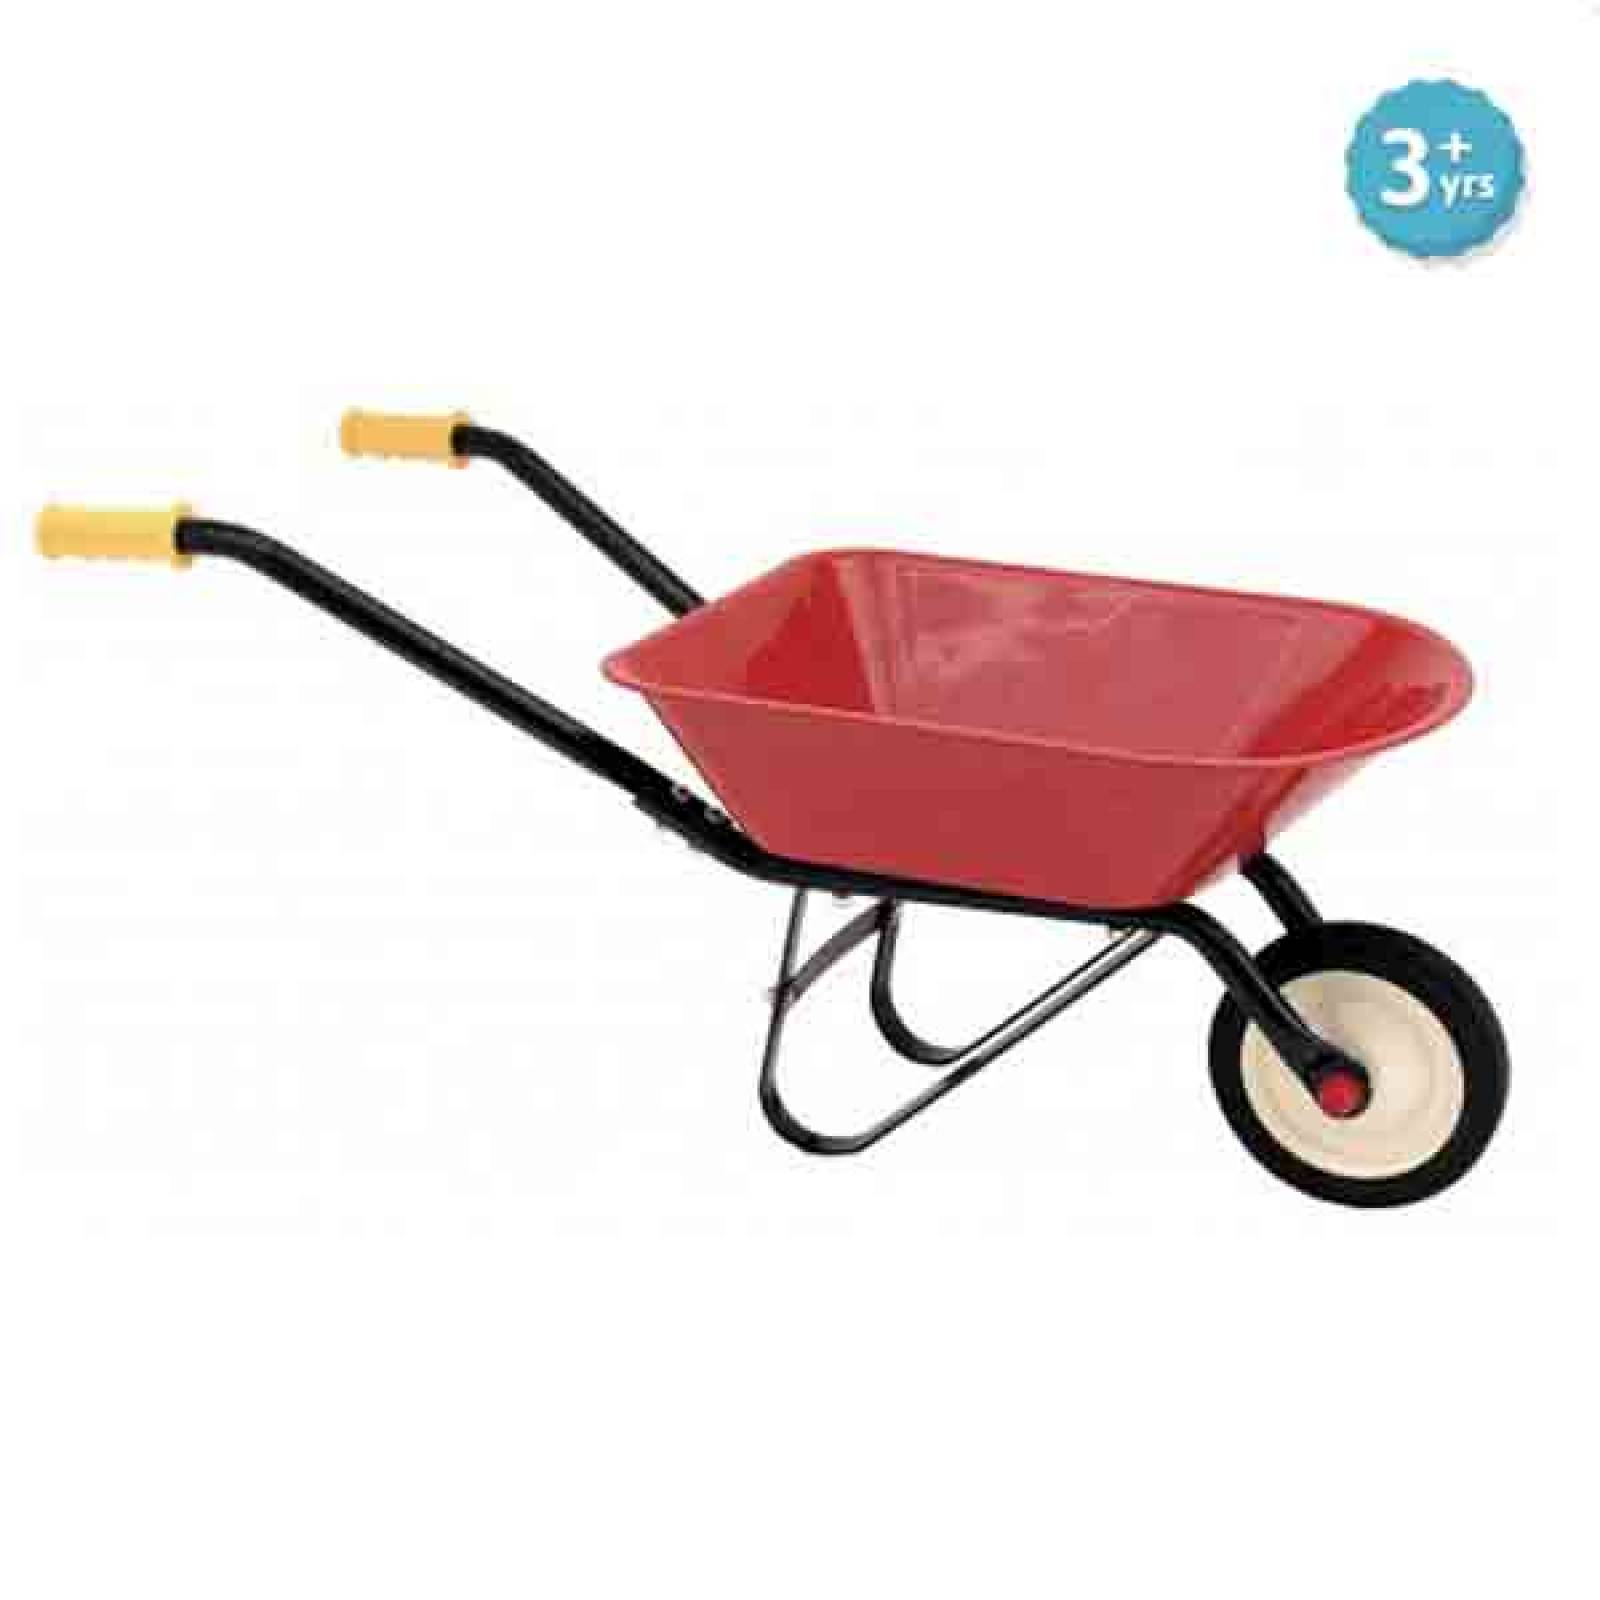 Classic Red Wheelbarrow 3yr+